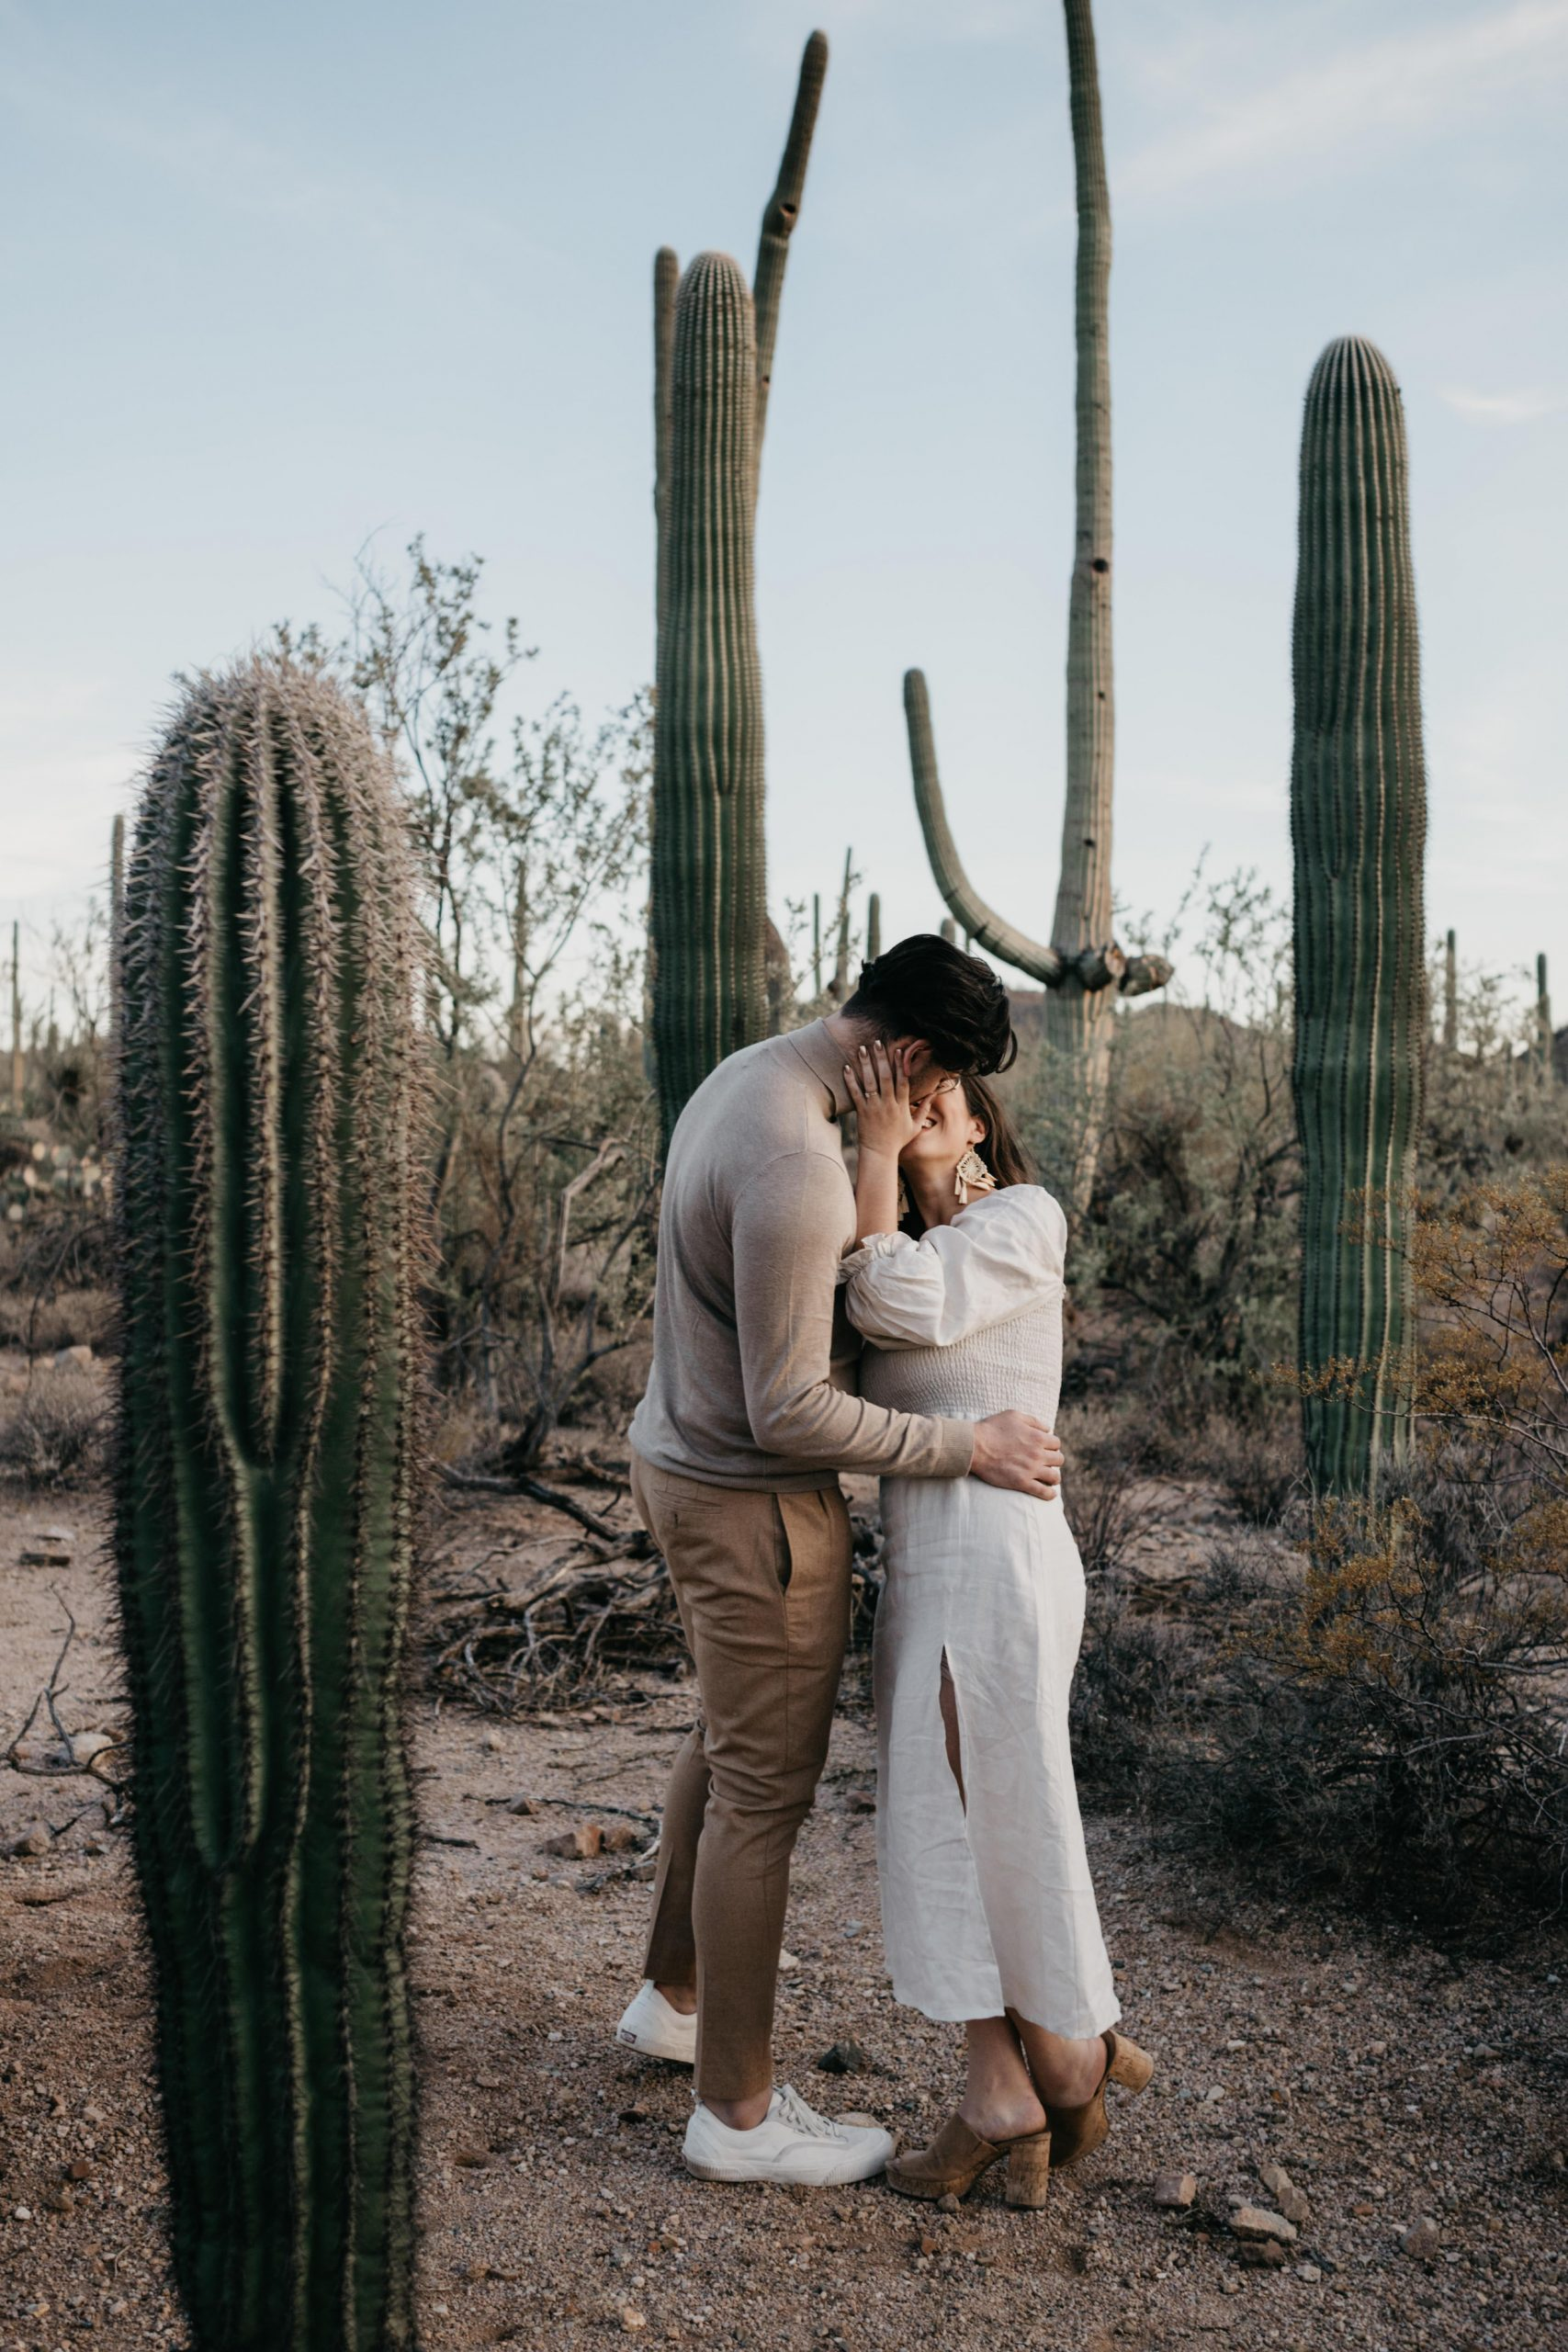 Couple kisses during their desert engagement photos, image by Fatima Elreda Photo